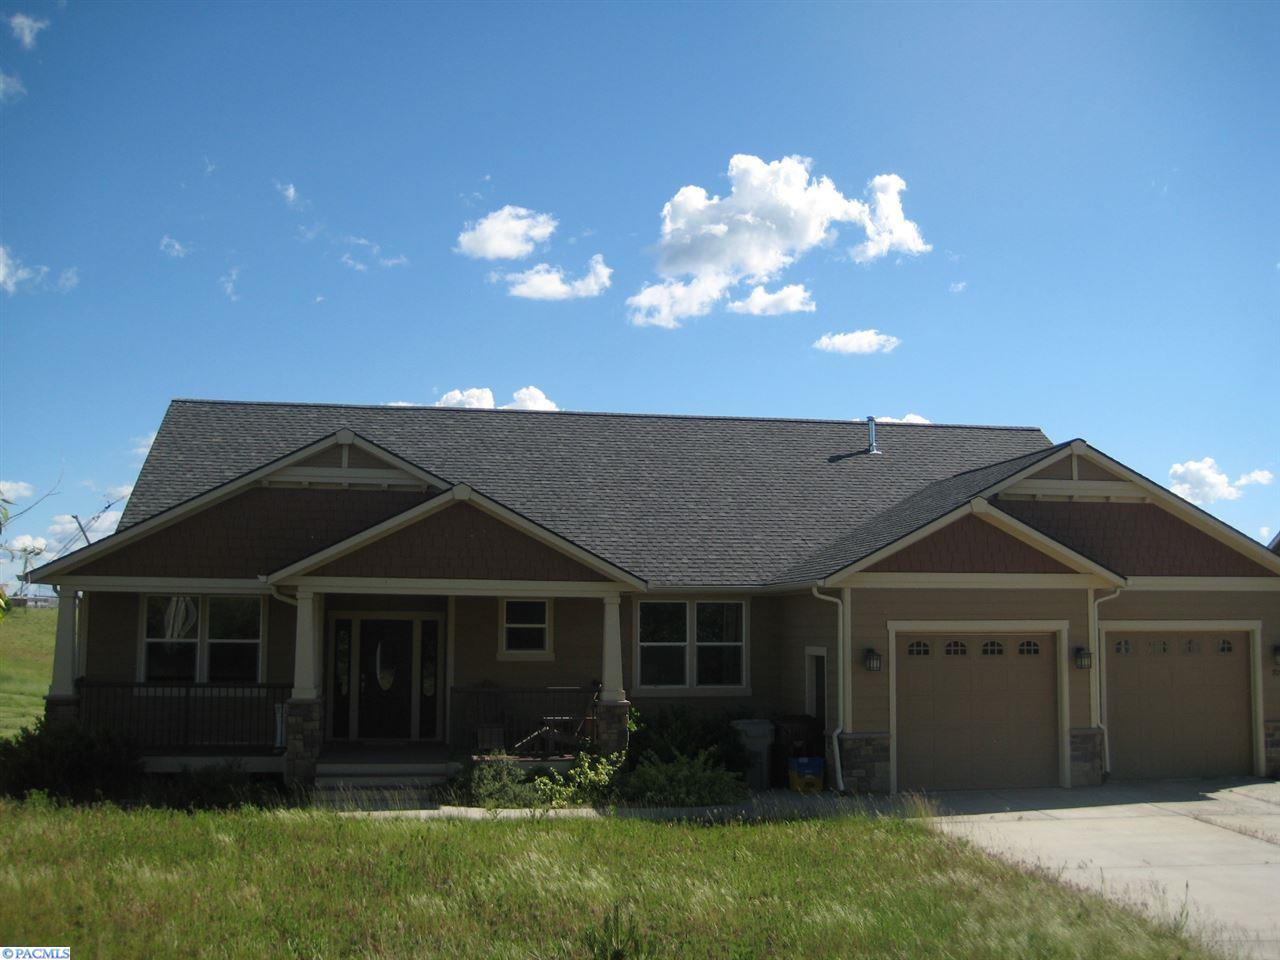 705 Nw Palouse View Drive, Pullman, Washington 99163